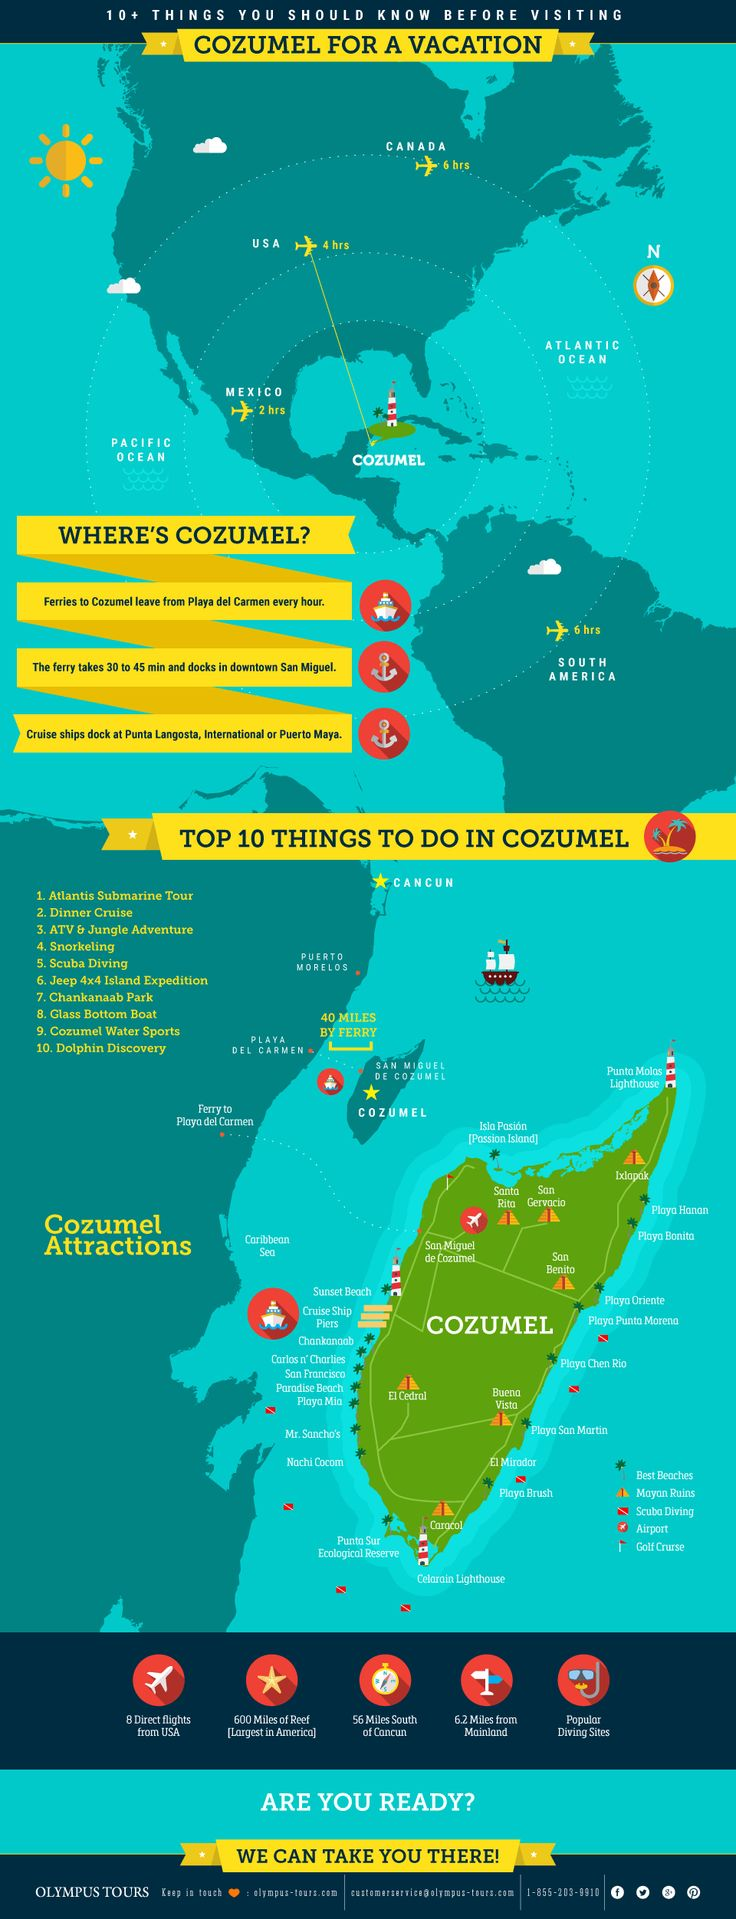 You could argue that Cozumel is a great vacation destination for any number of reasons. From its convenient proximity, amazing beaches, excellent scuba diving, calming atmosphere or any number of other reasons this Mexican island is definitely worthy of your consideration. There's very little wrong with a tropical island for your next vacation. #infographic